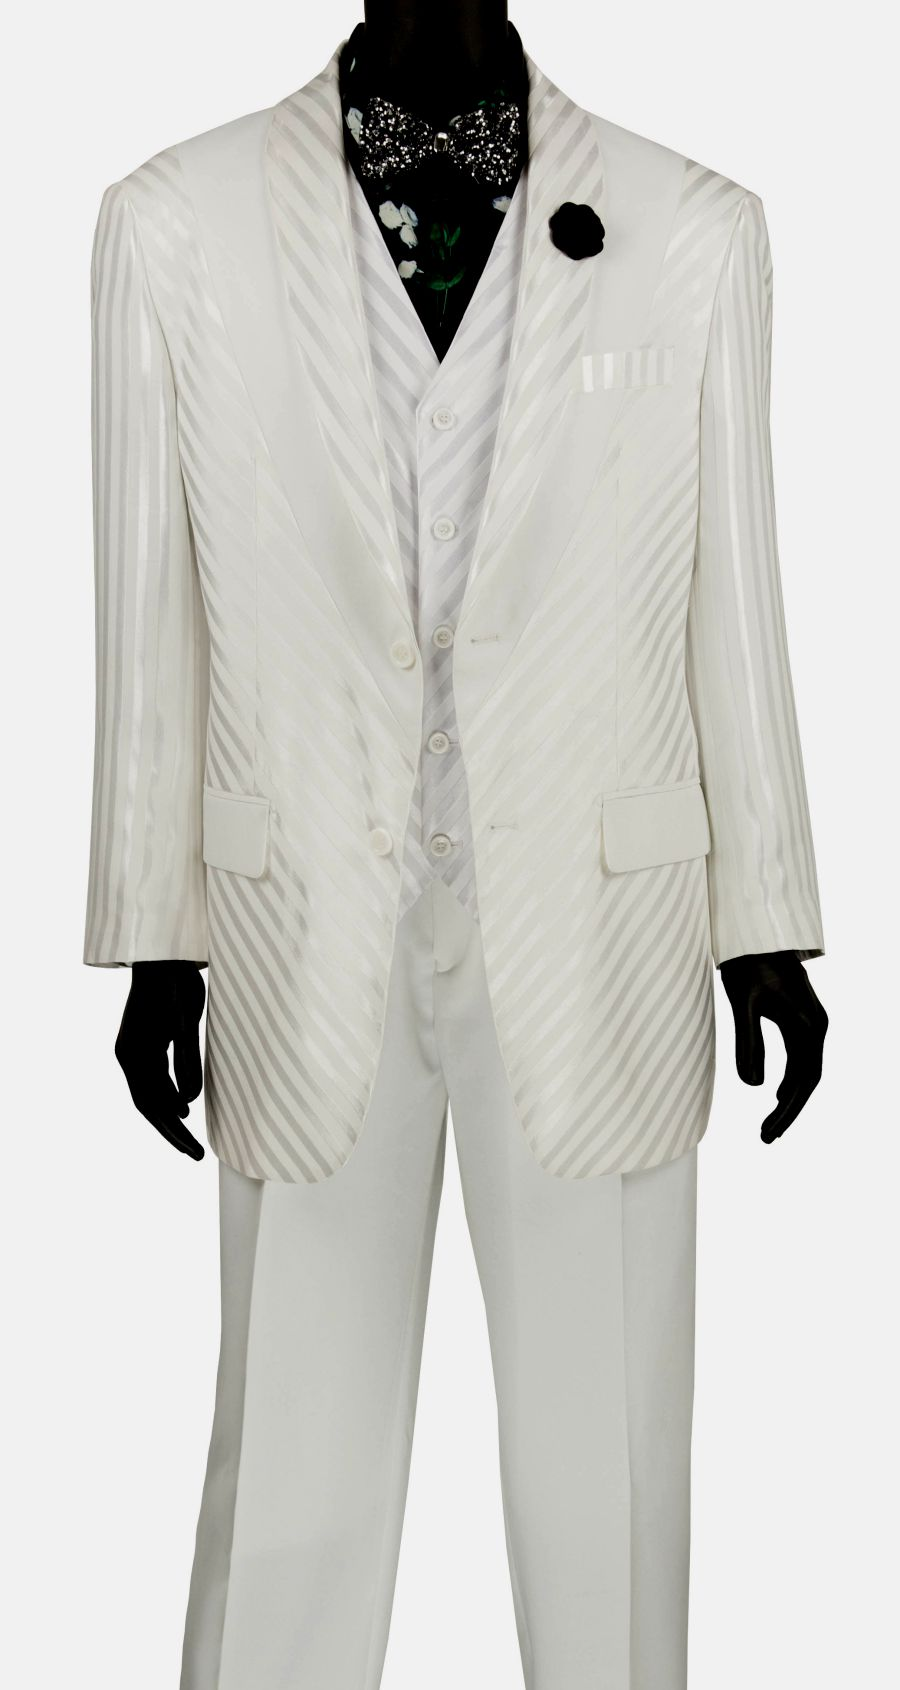 Vinci Men Suit 23RS-9-White - Church Suits For Less